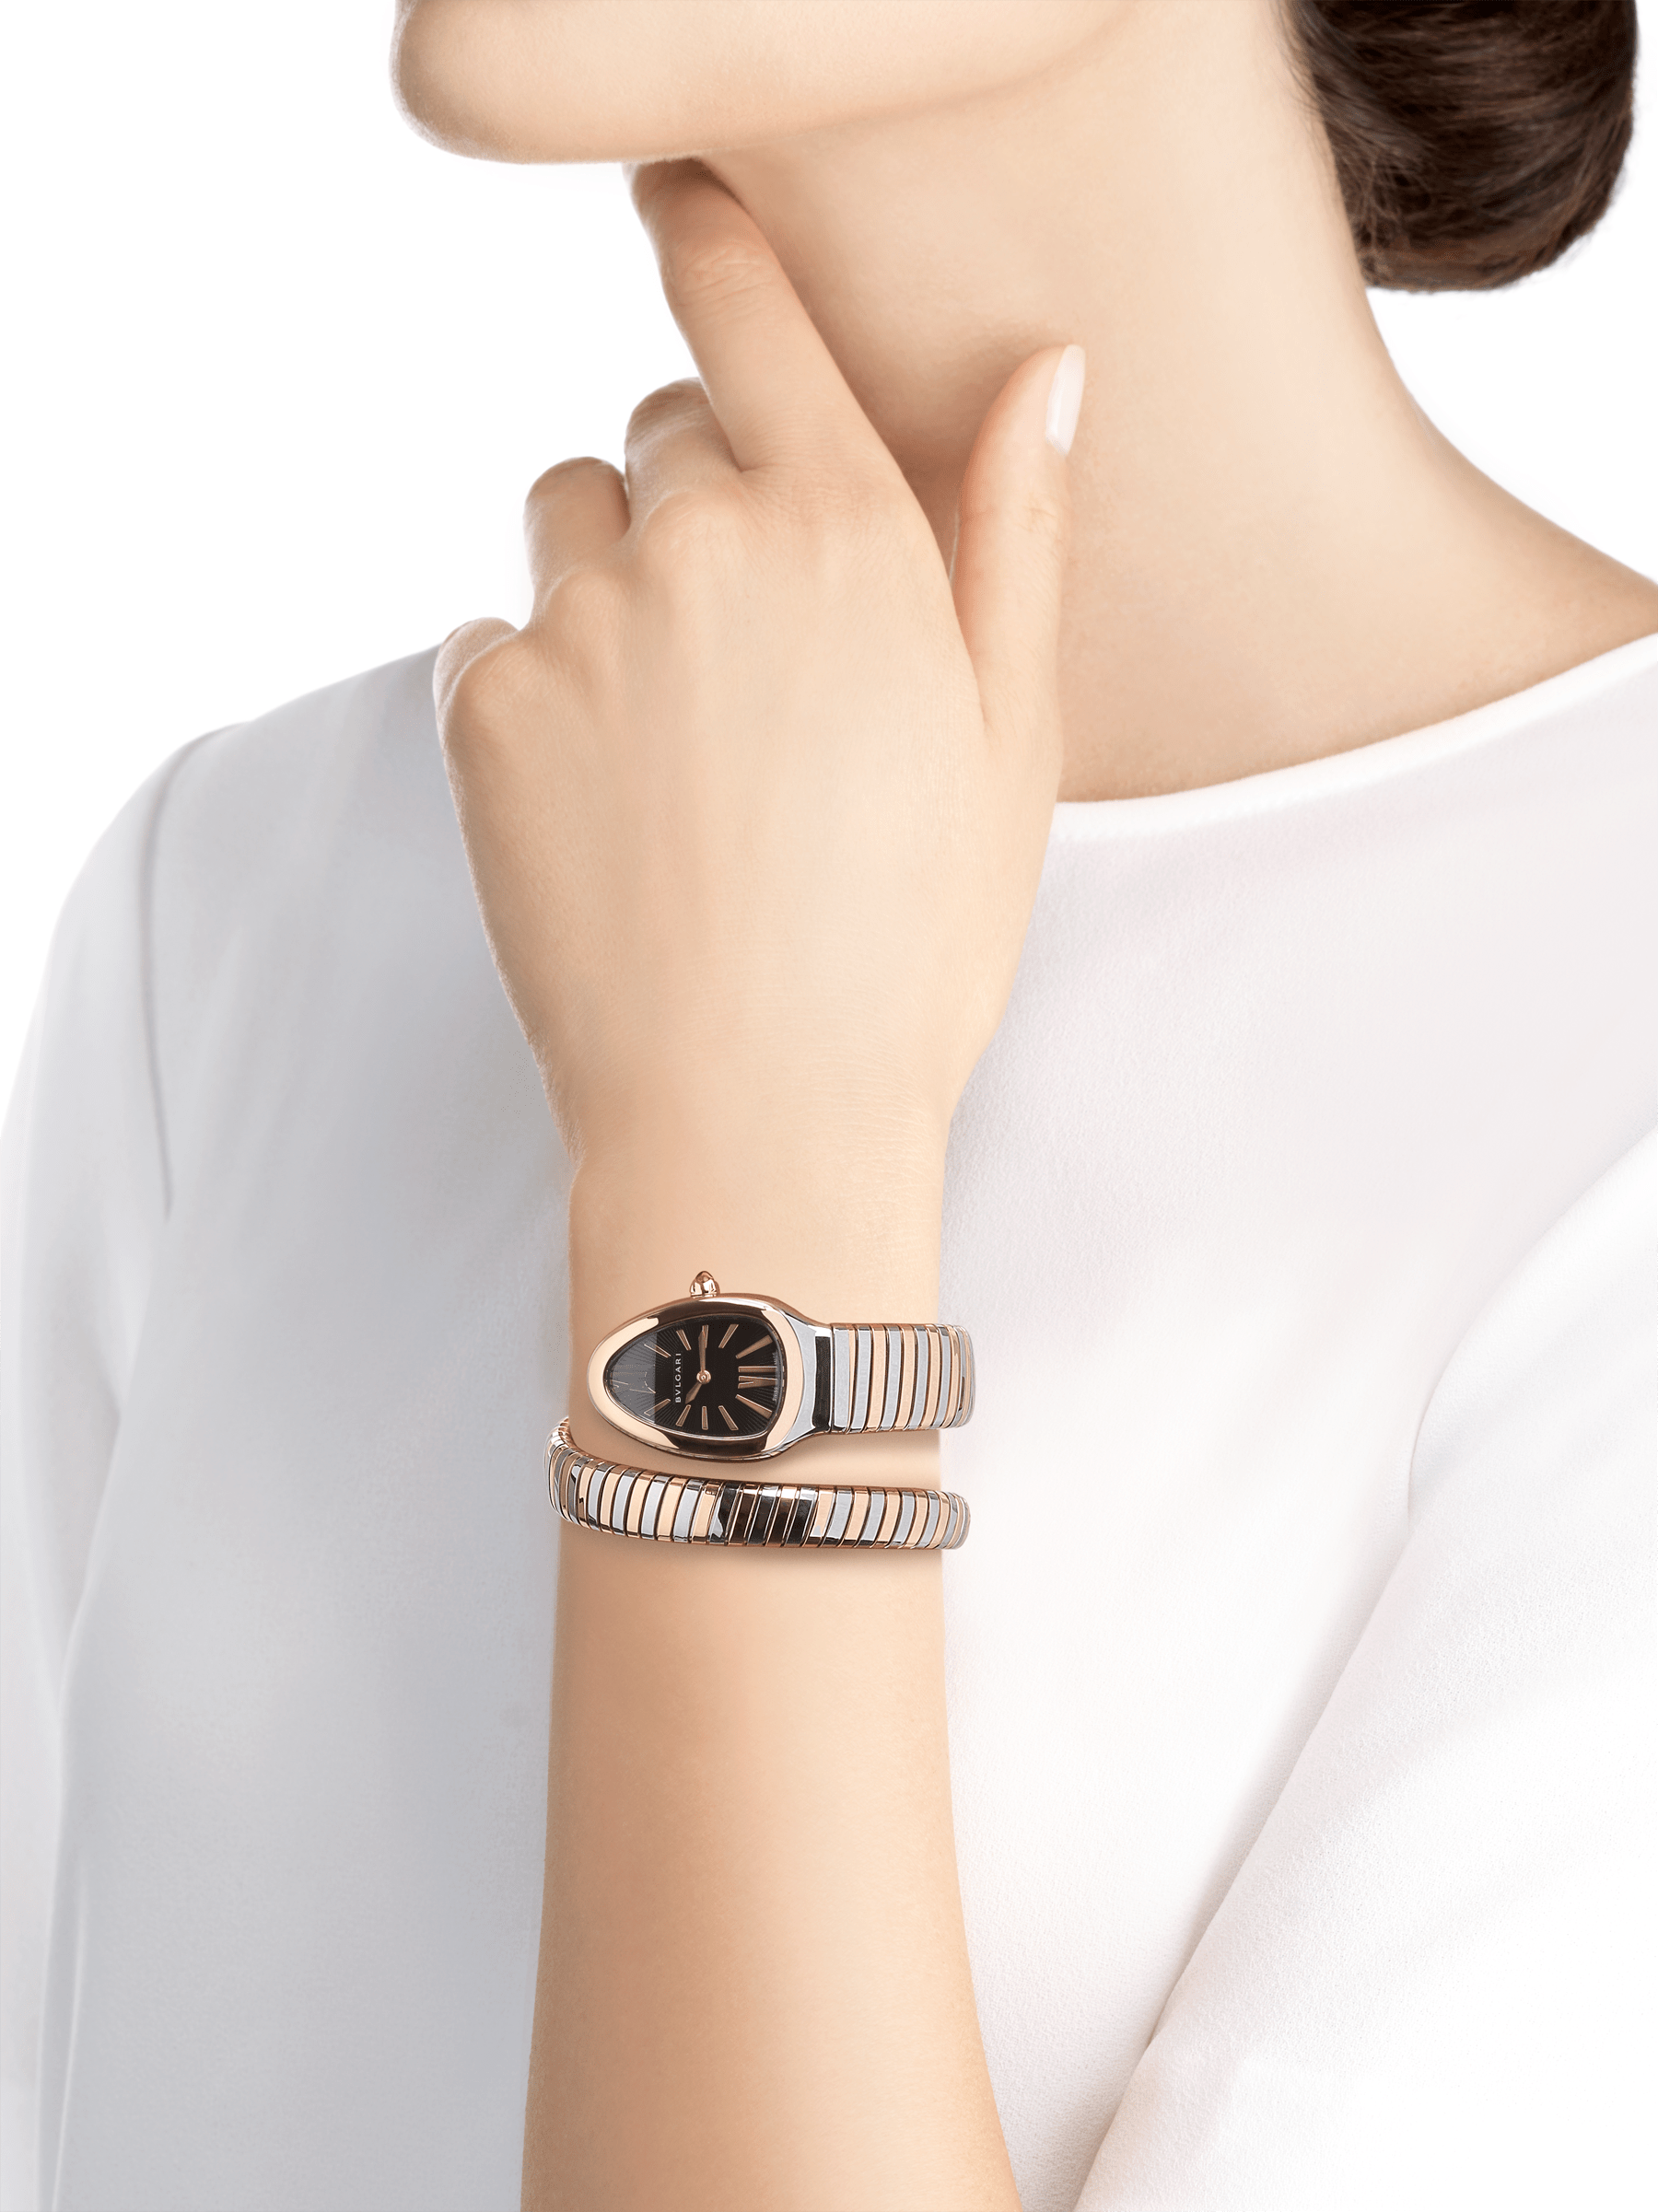 Serpenti Tubogas single spiral watch in 18 kt rose gold and stainless steel case and bracelet, with black opaline dial. 102123 image 4